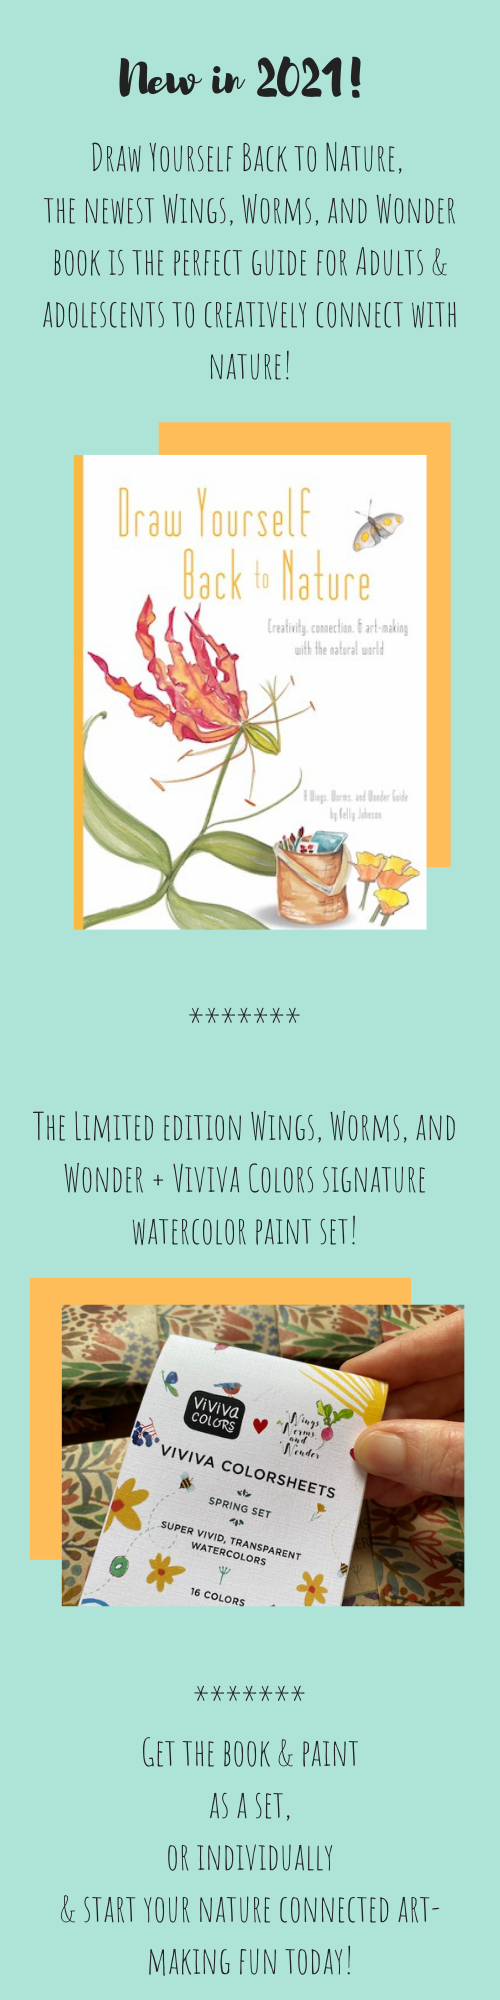 Wings, Worms, and Wonder connects humans and nature, creatively!